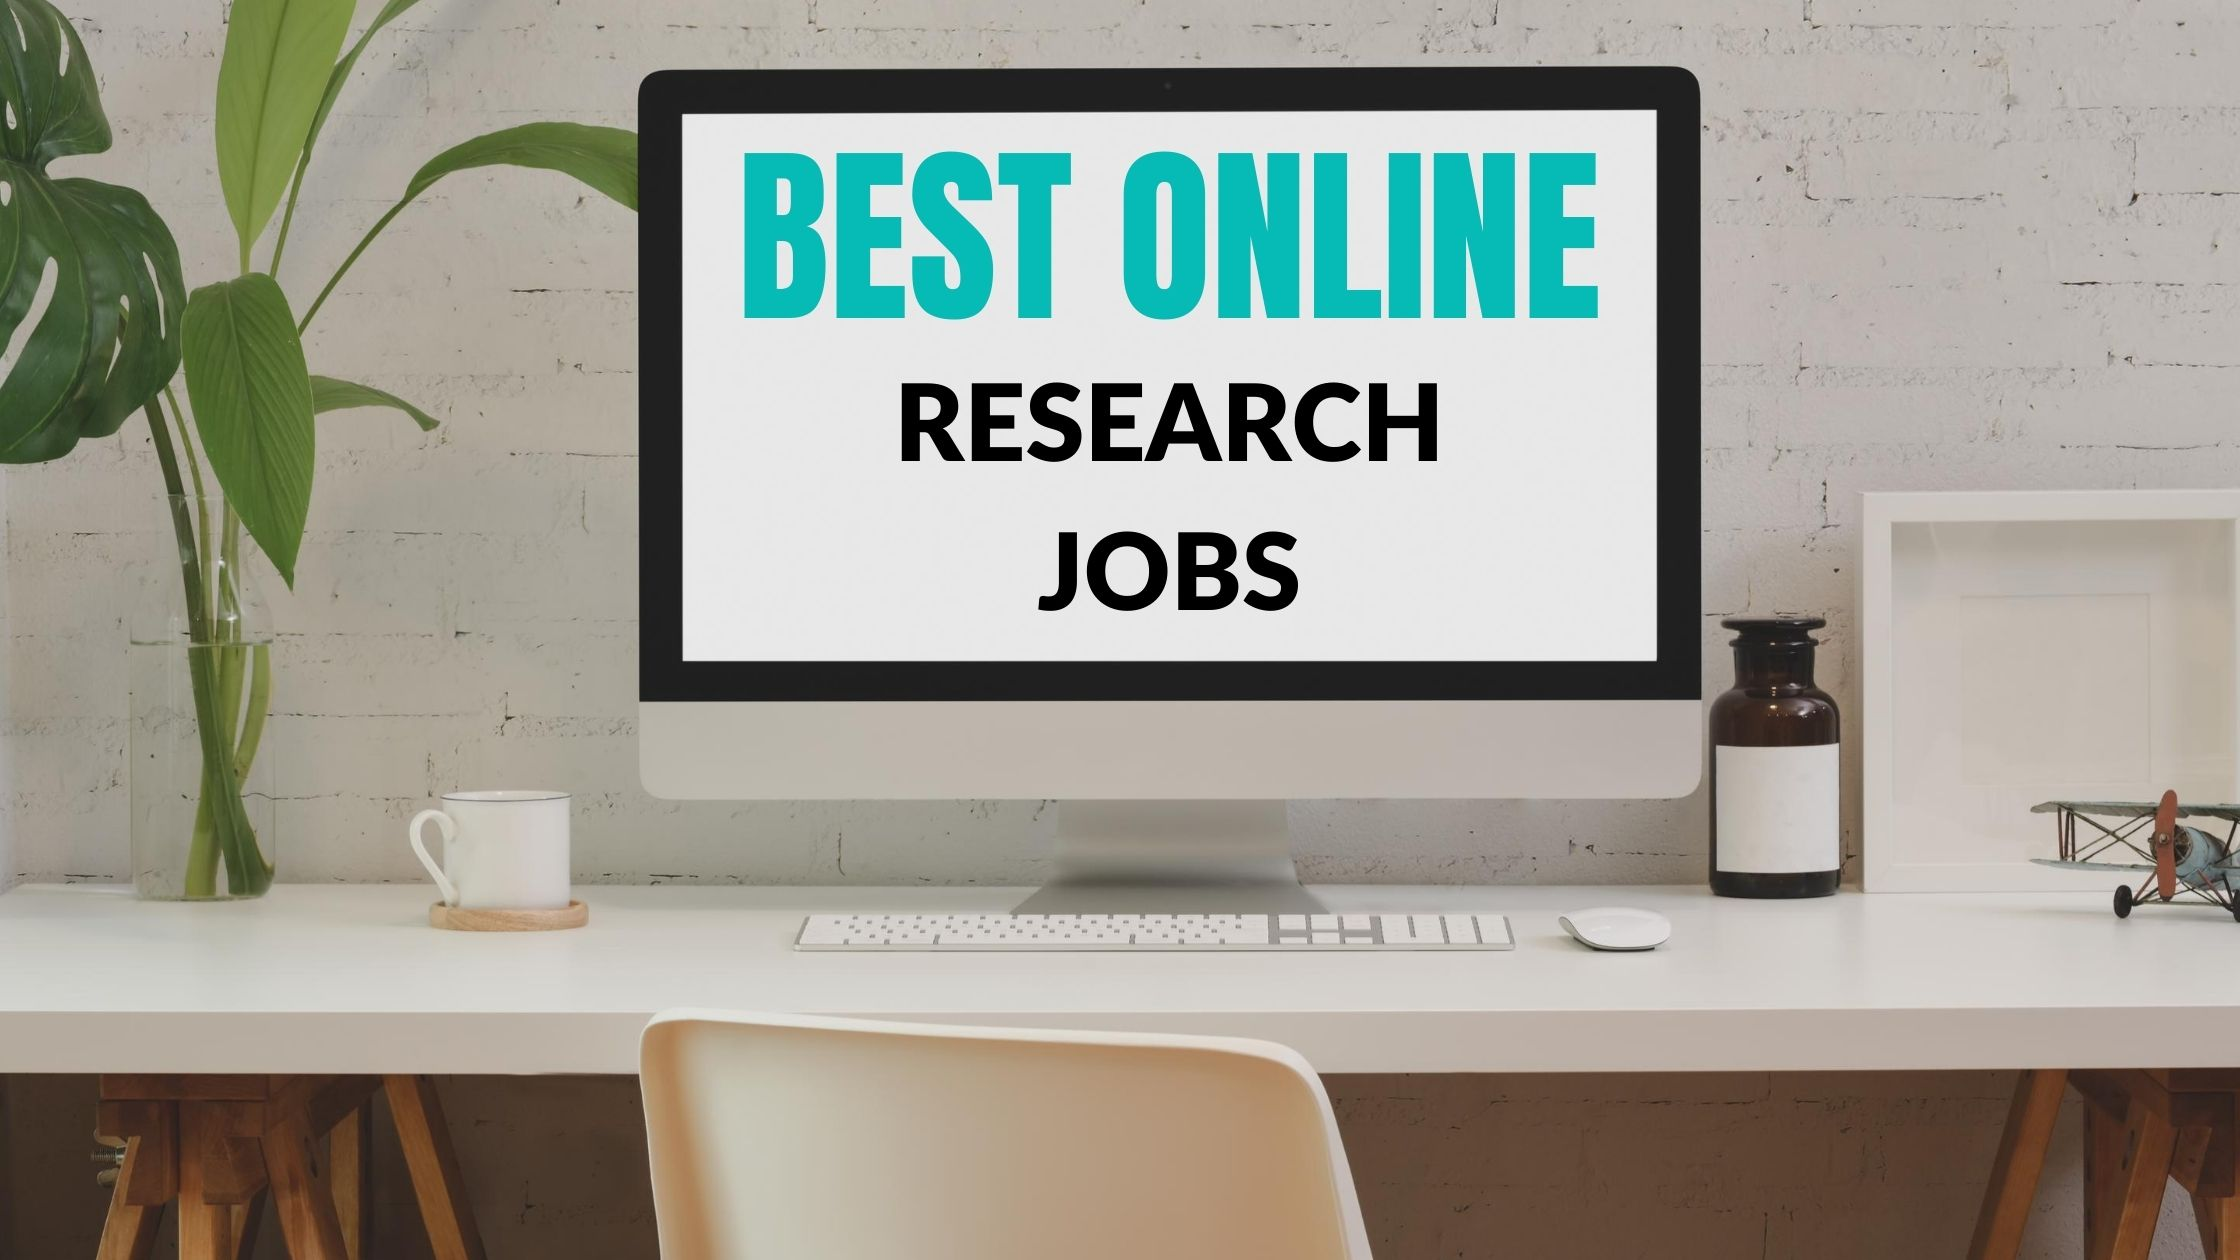 BEST ONLINE RESEARCH JOBS